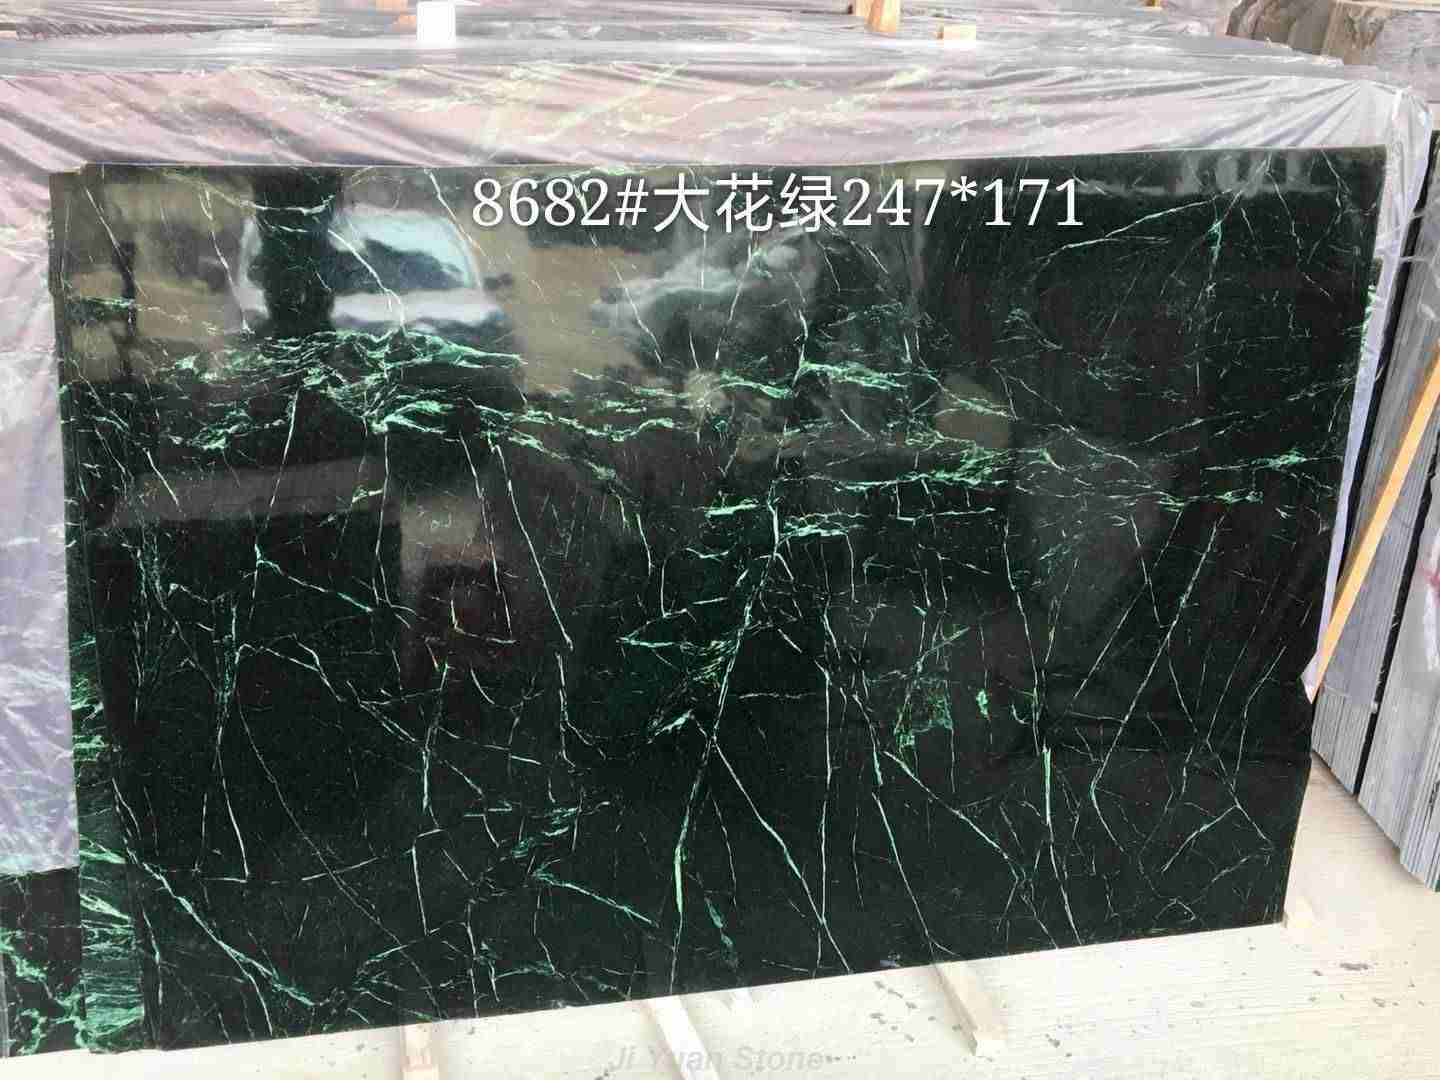 green and white marble,swedish green marble,green marble makeup,green marble tray,green marble cost,pale green marble,green marble table,green marble coffee table